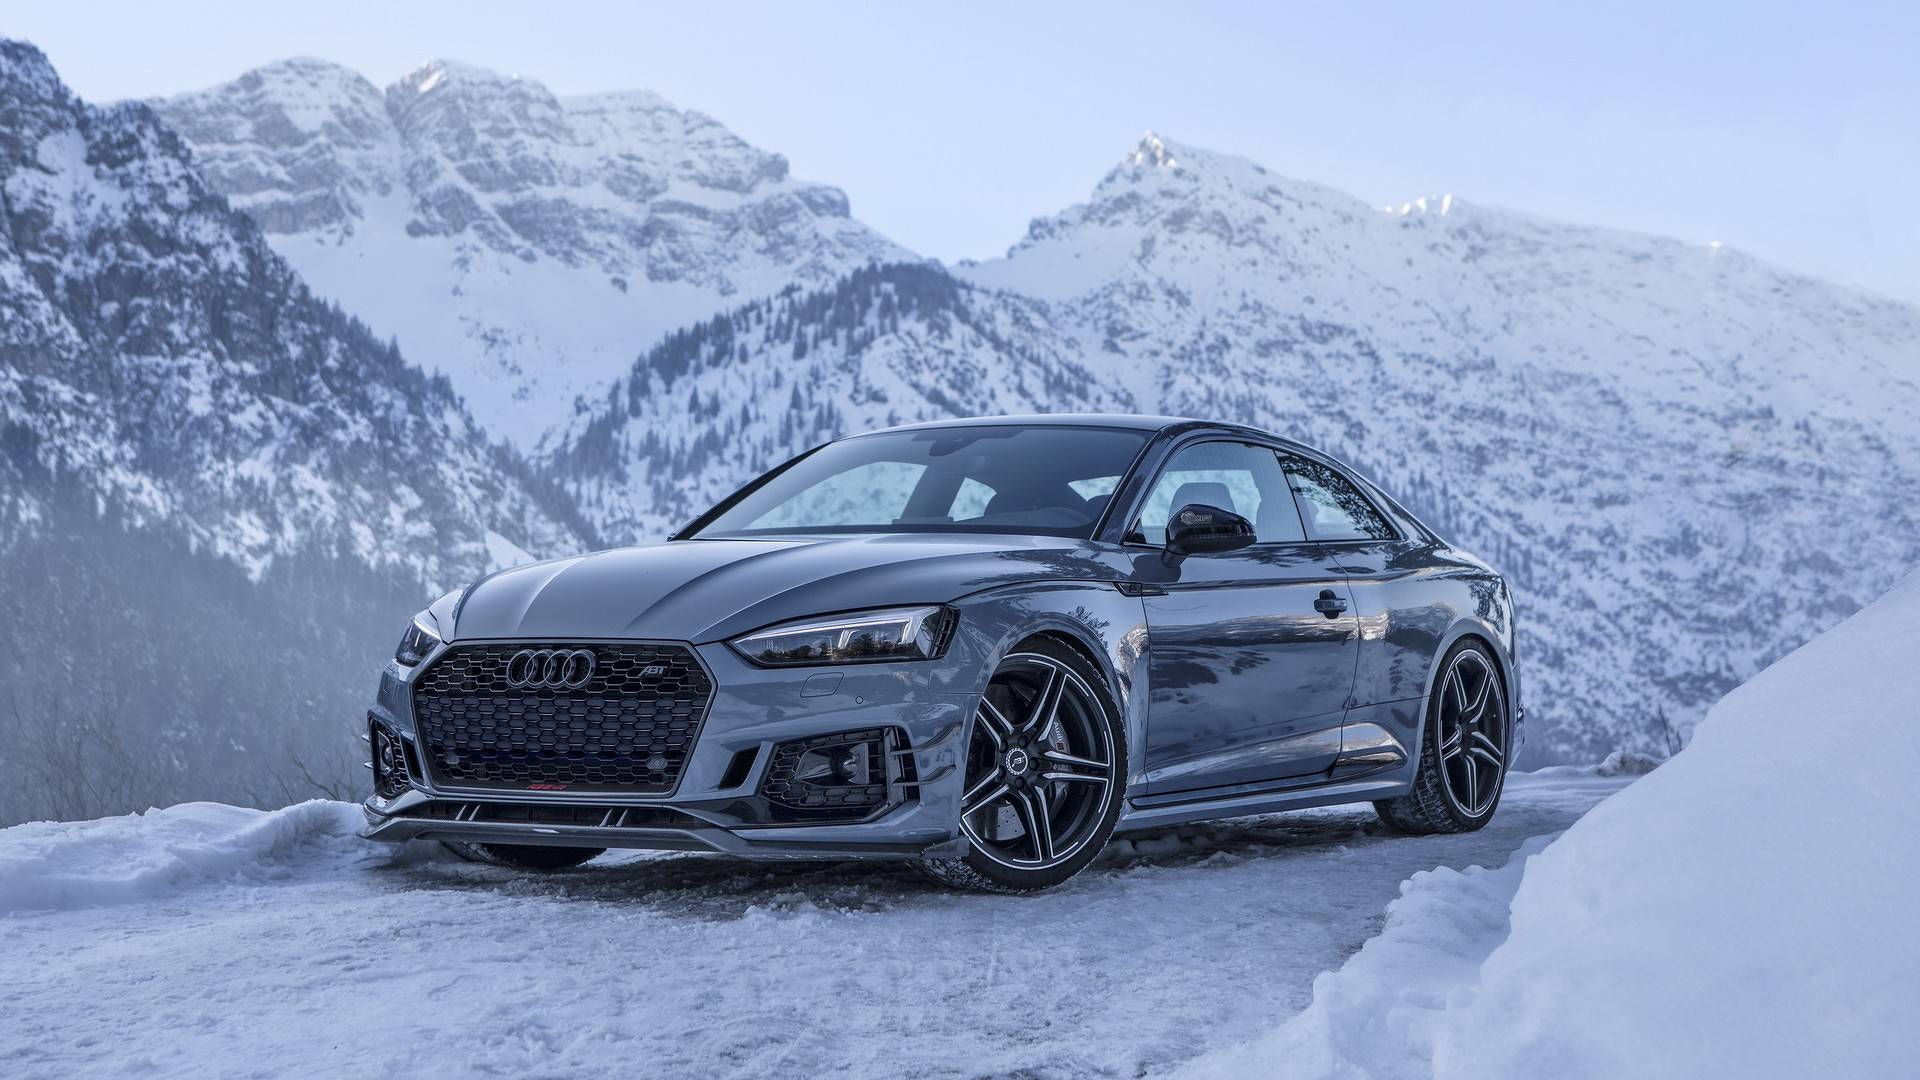 2018 Abt Audi Rs 5 R Coupe 4k Wallpaper Fondos De Pantalla